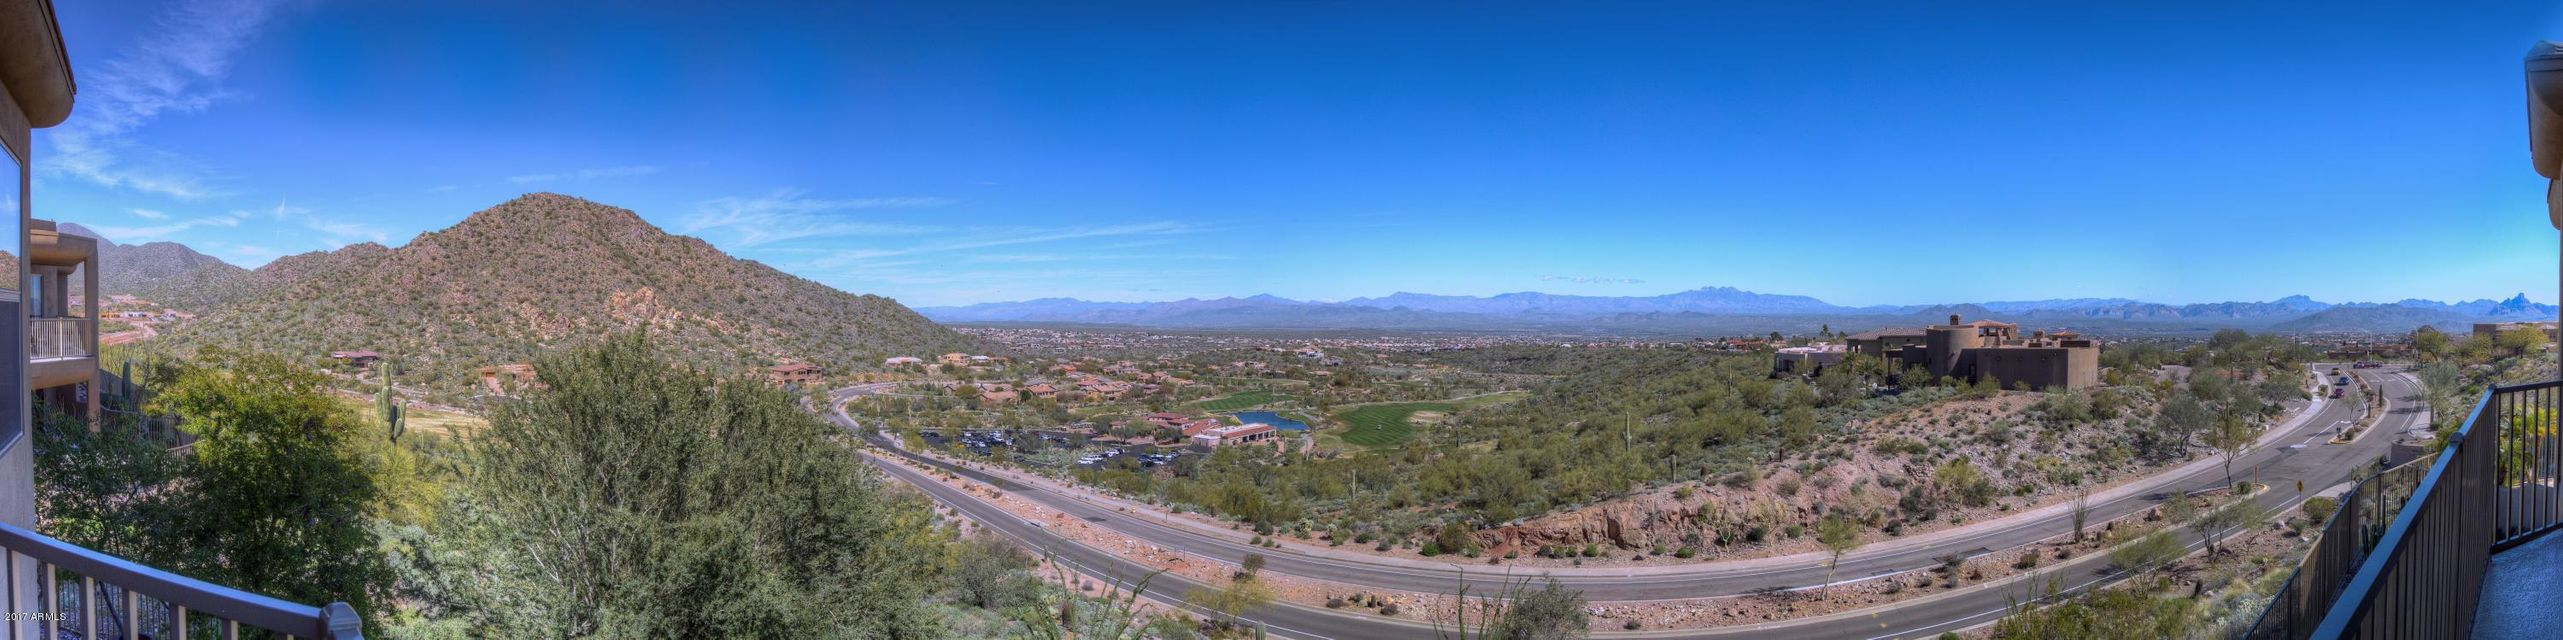 MLS 5562292 14850 E Grandview Drive Unit 227, Fountain Hills, AZ Fountain Hills AZ Luxury